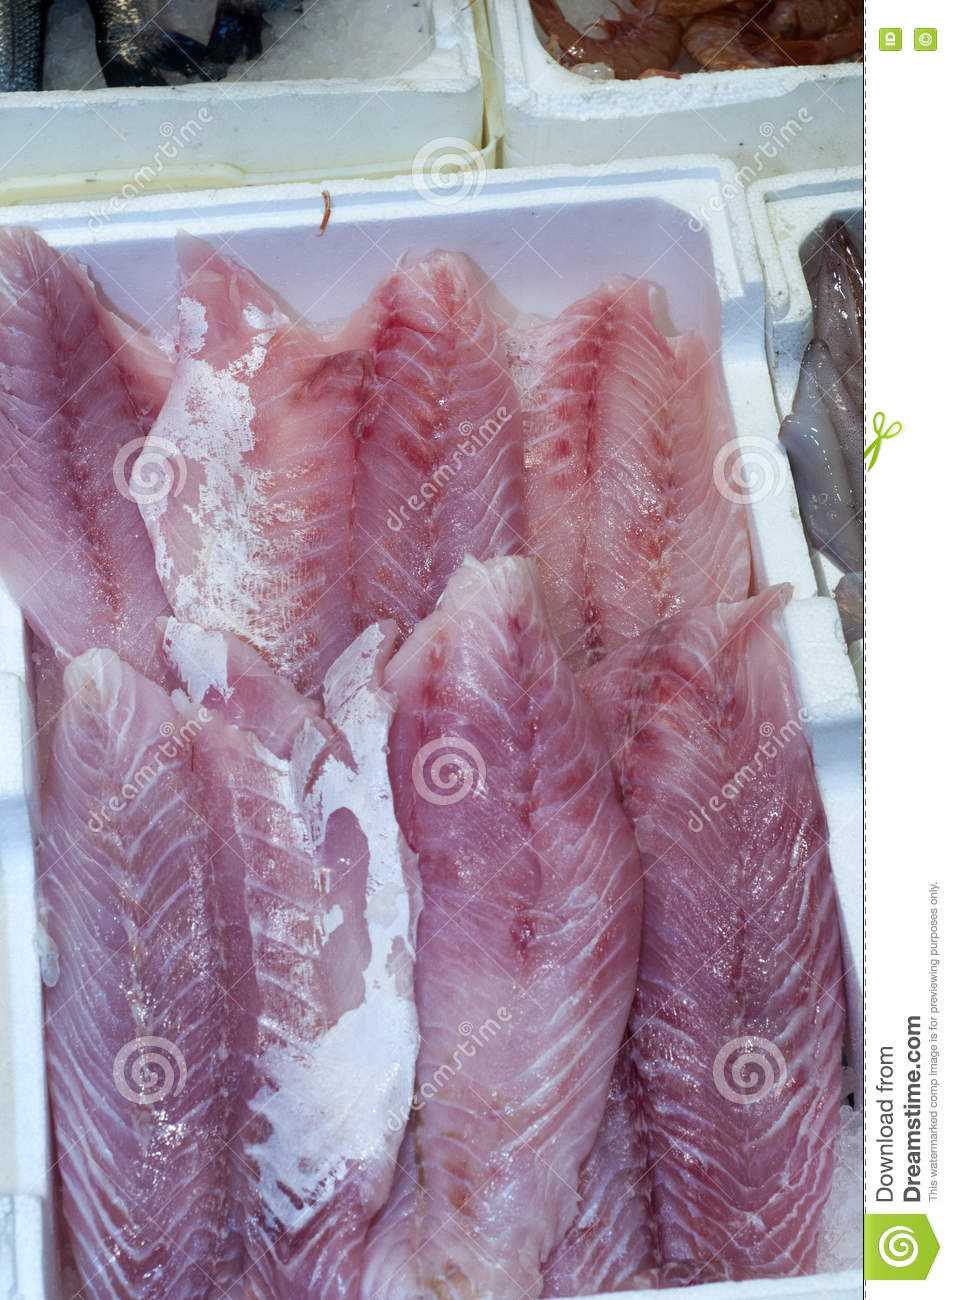 Fish fillets in market stock photo image 79968820 for White fish market